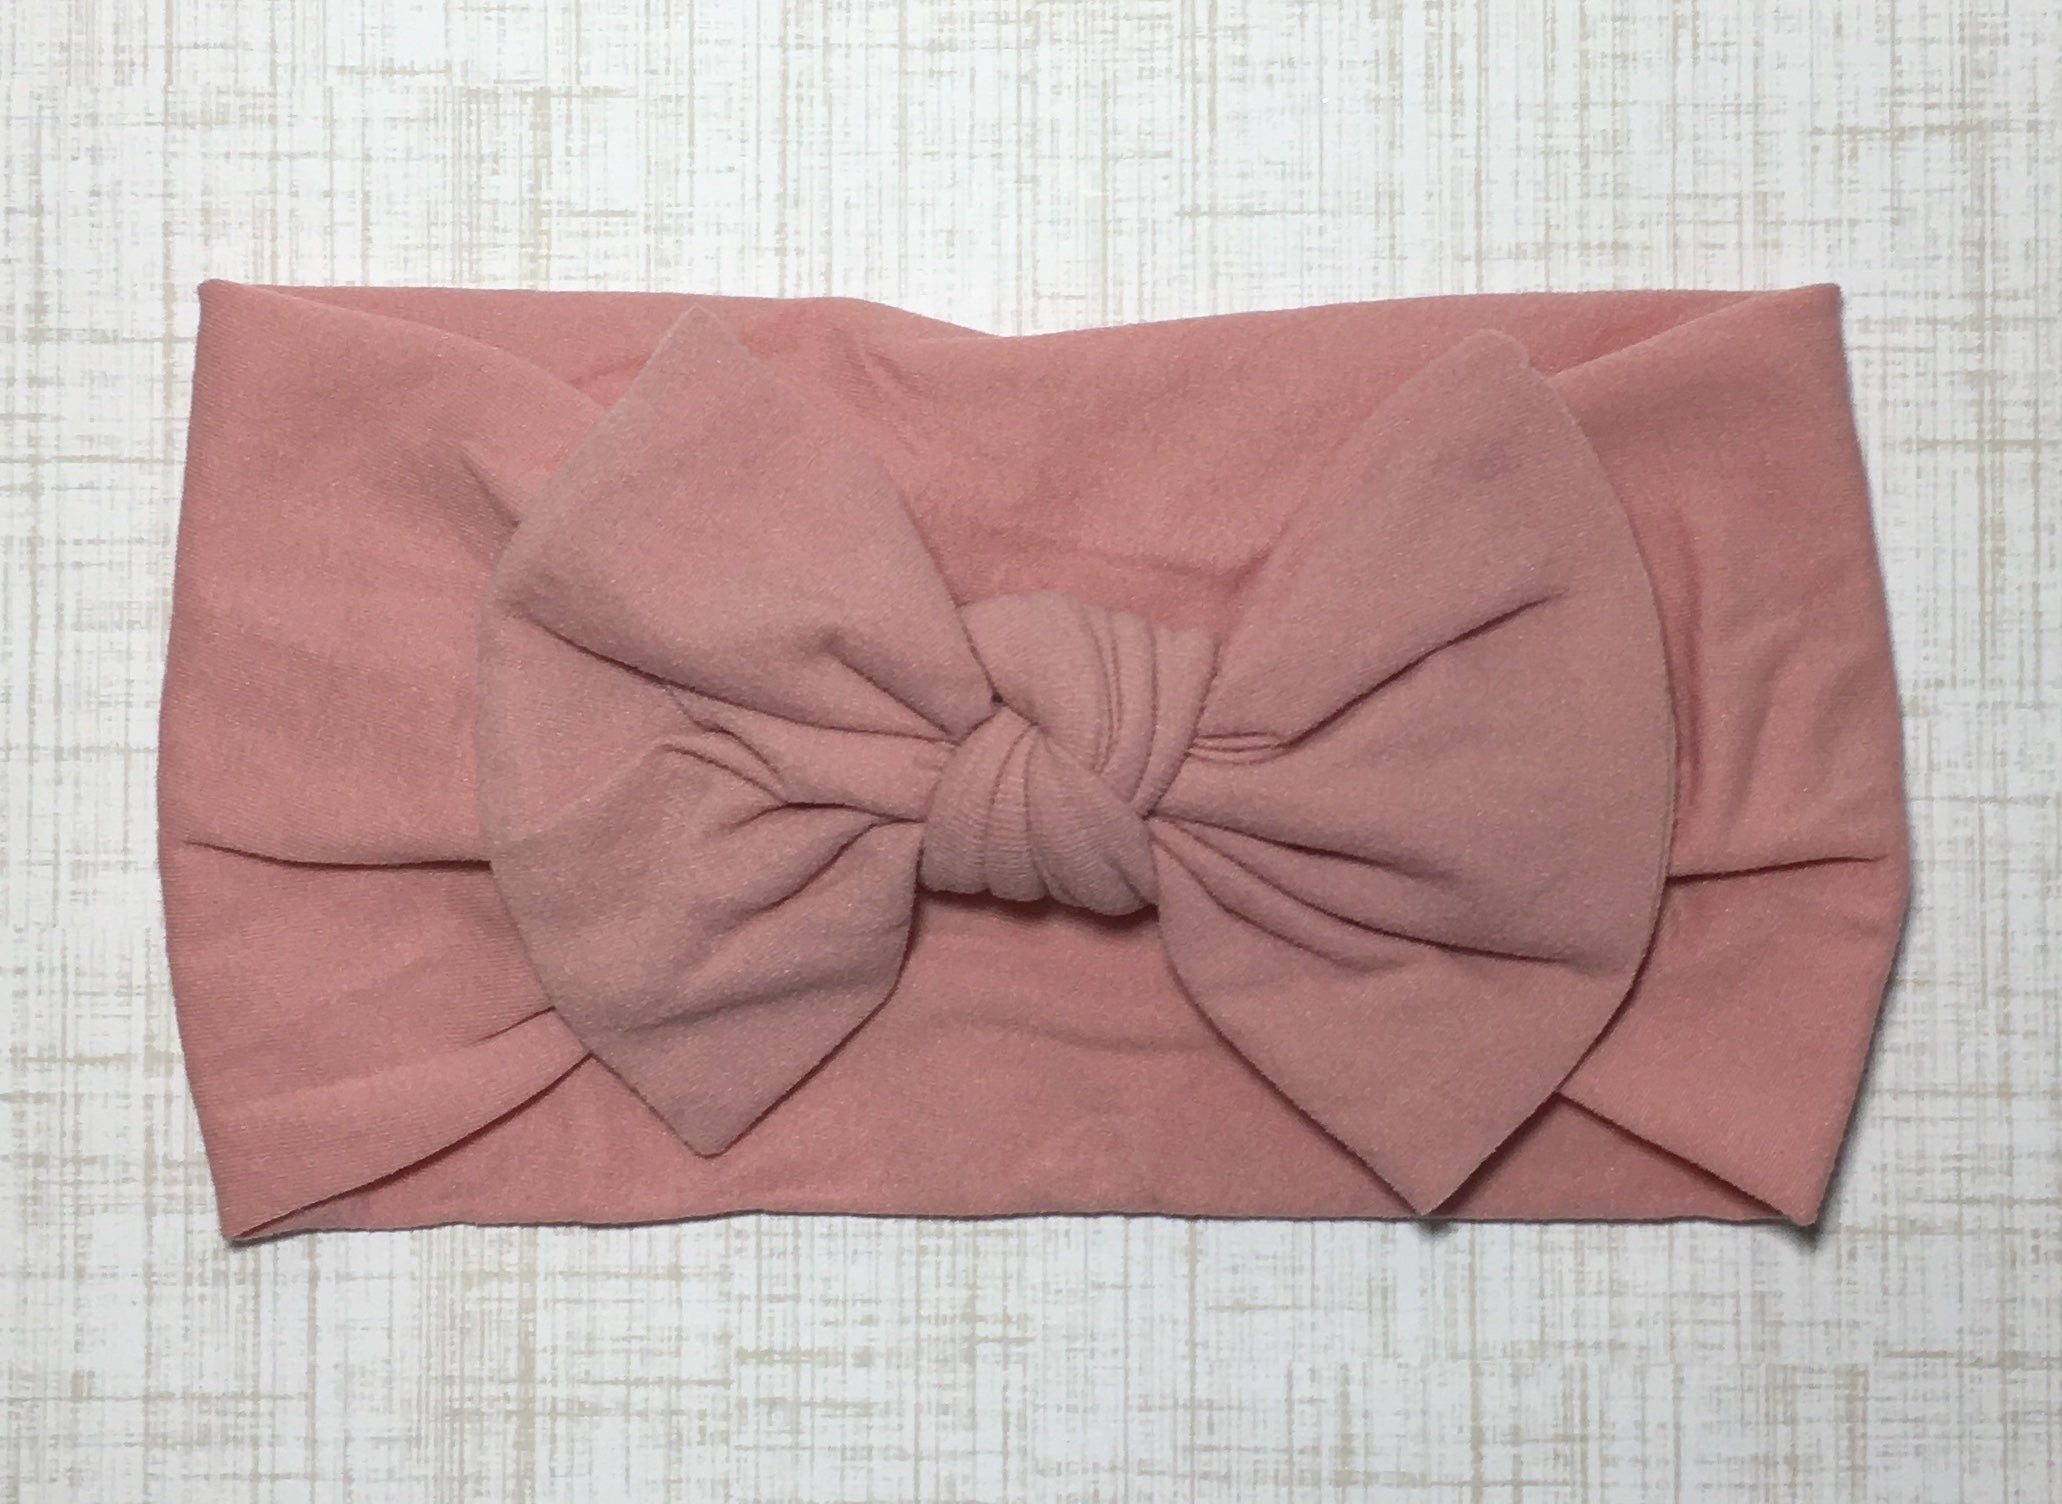 Nylon Ballet Bow Headband in Dusty Pink - shabbyflowers.com